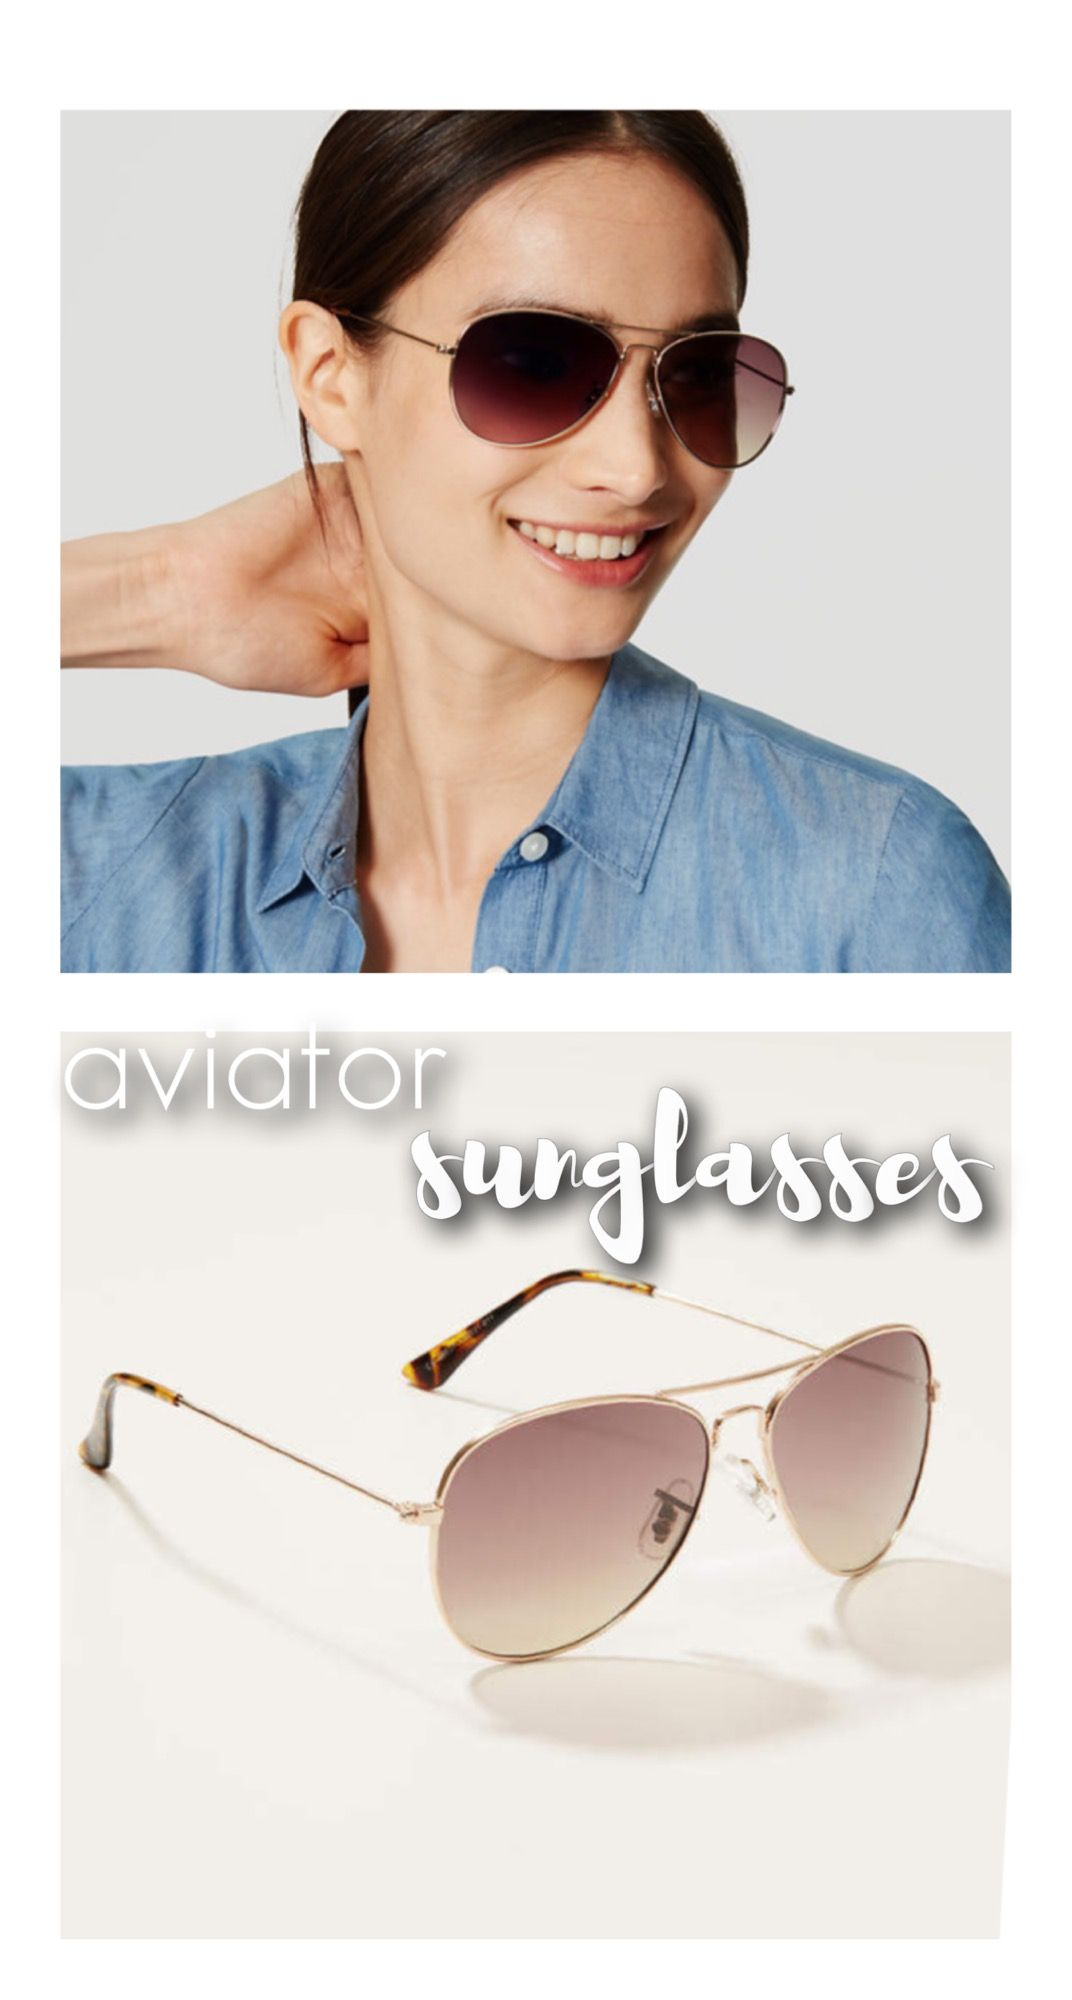 ccb15c013a0 Just what I need for the beautiful  summer days ahead!  ad  summerstyle   sunglasses